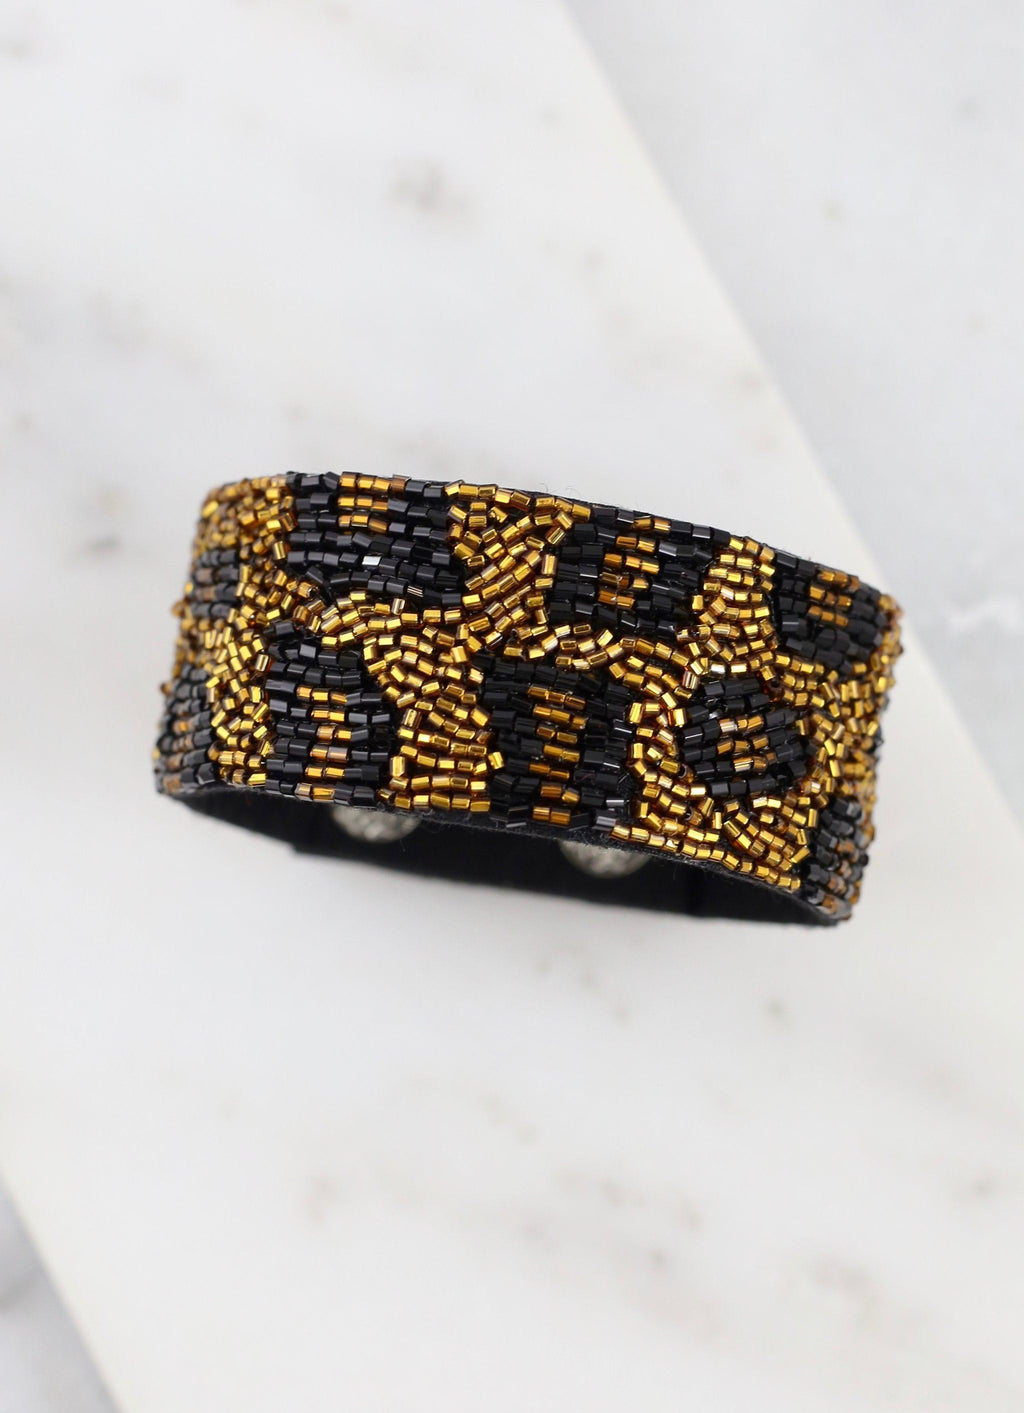 Hebron Brown Beaded Leopard Snap Bracelet - Caroline Hill